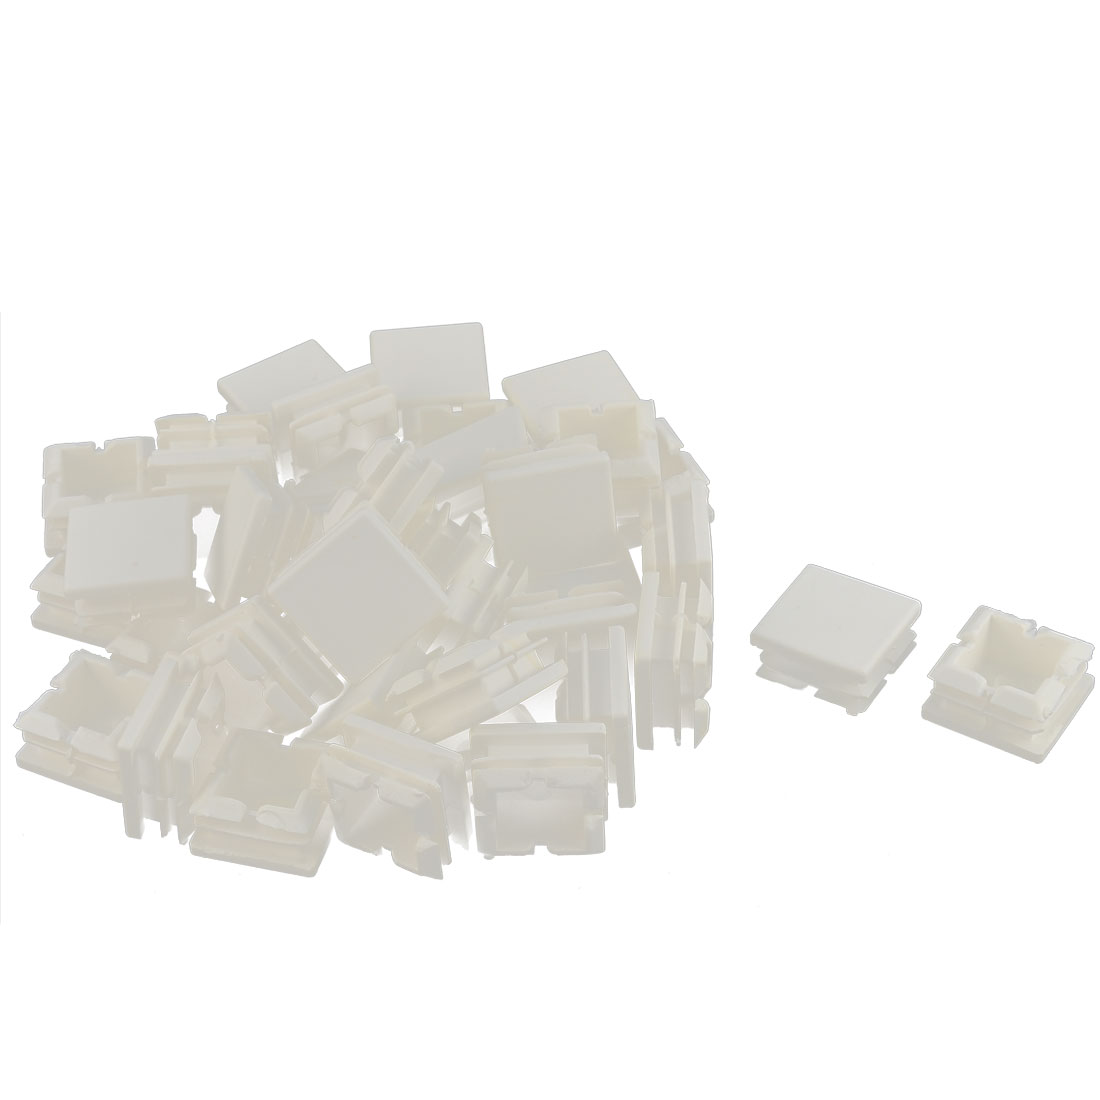 Furniture Table Chair Legs Plastic Square Tube Insert Cap Cover Protector White 25 x 25mm 40pcs